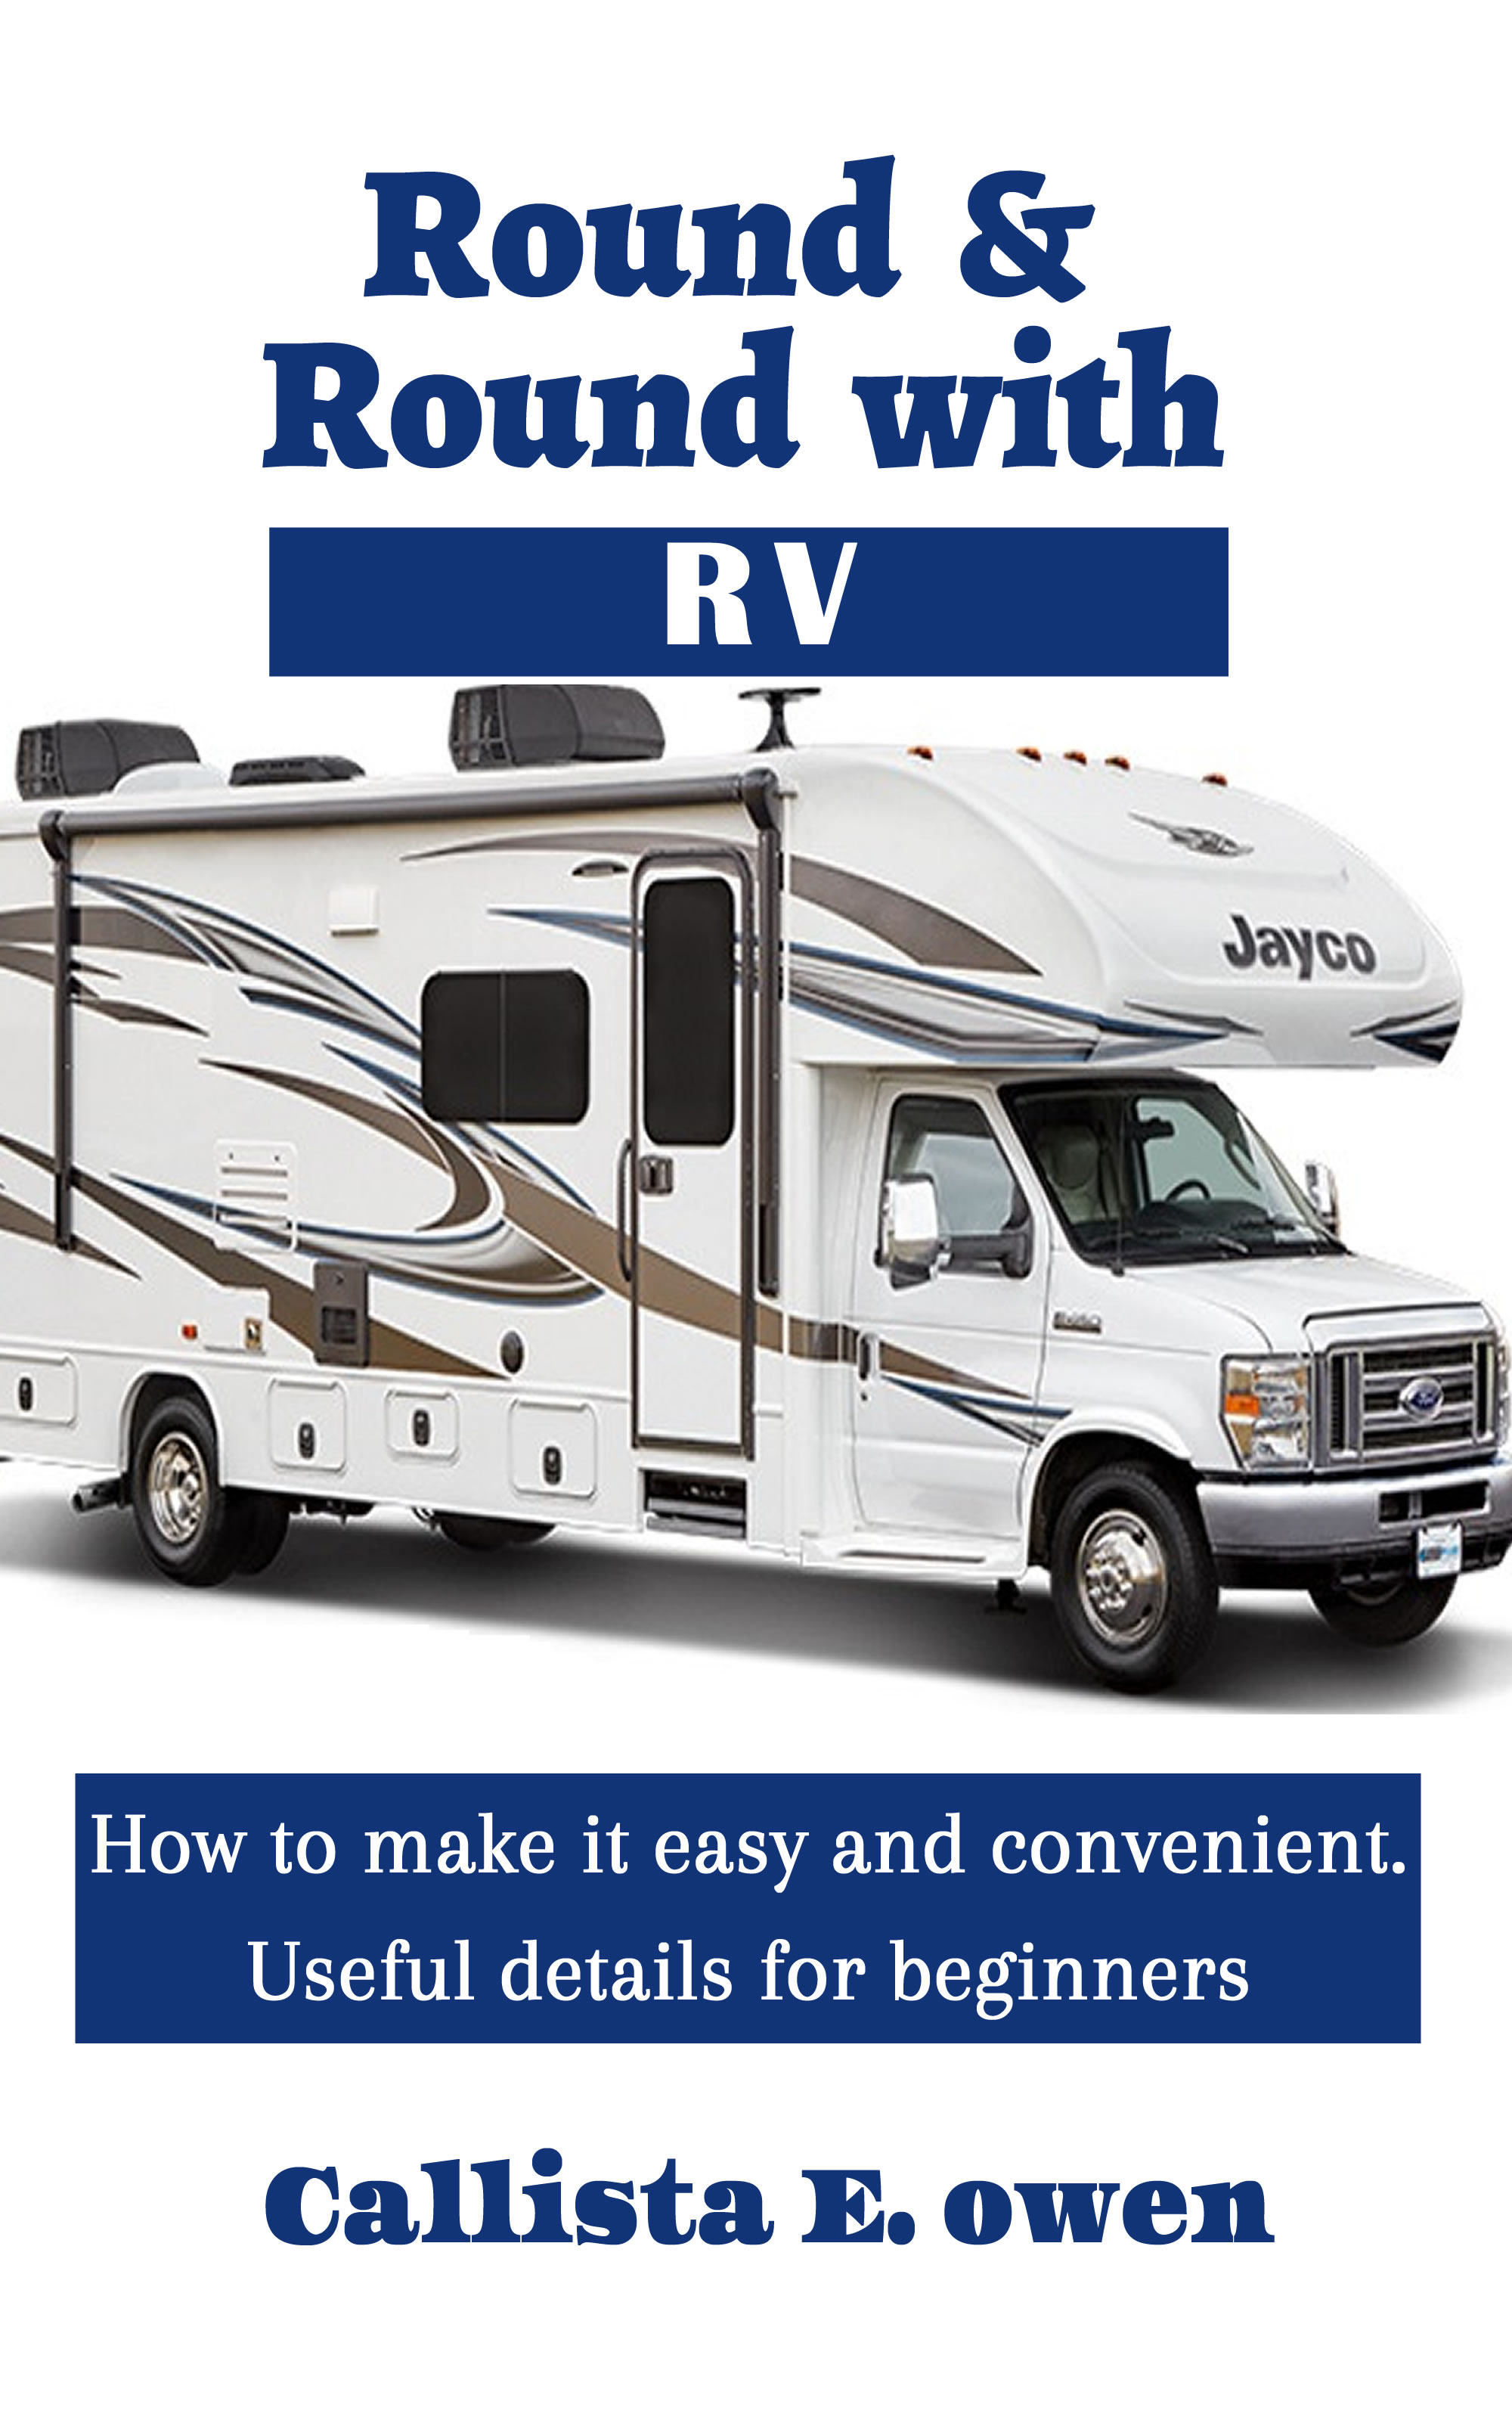 Round and  round with rv how to make it easy and convenient useful details for beginners